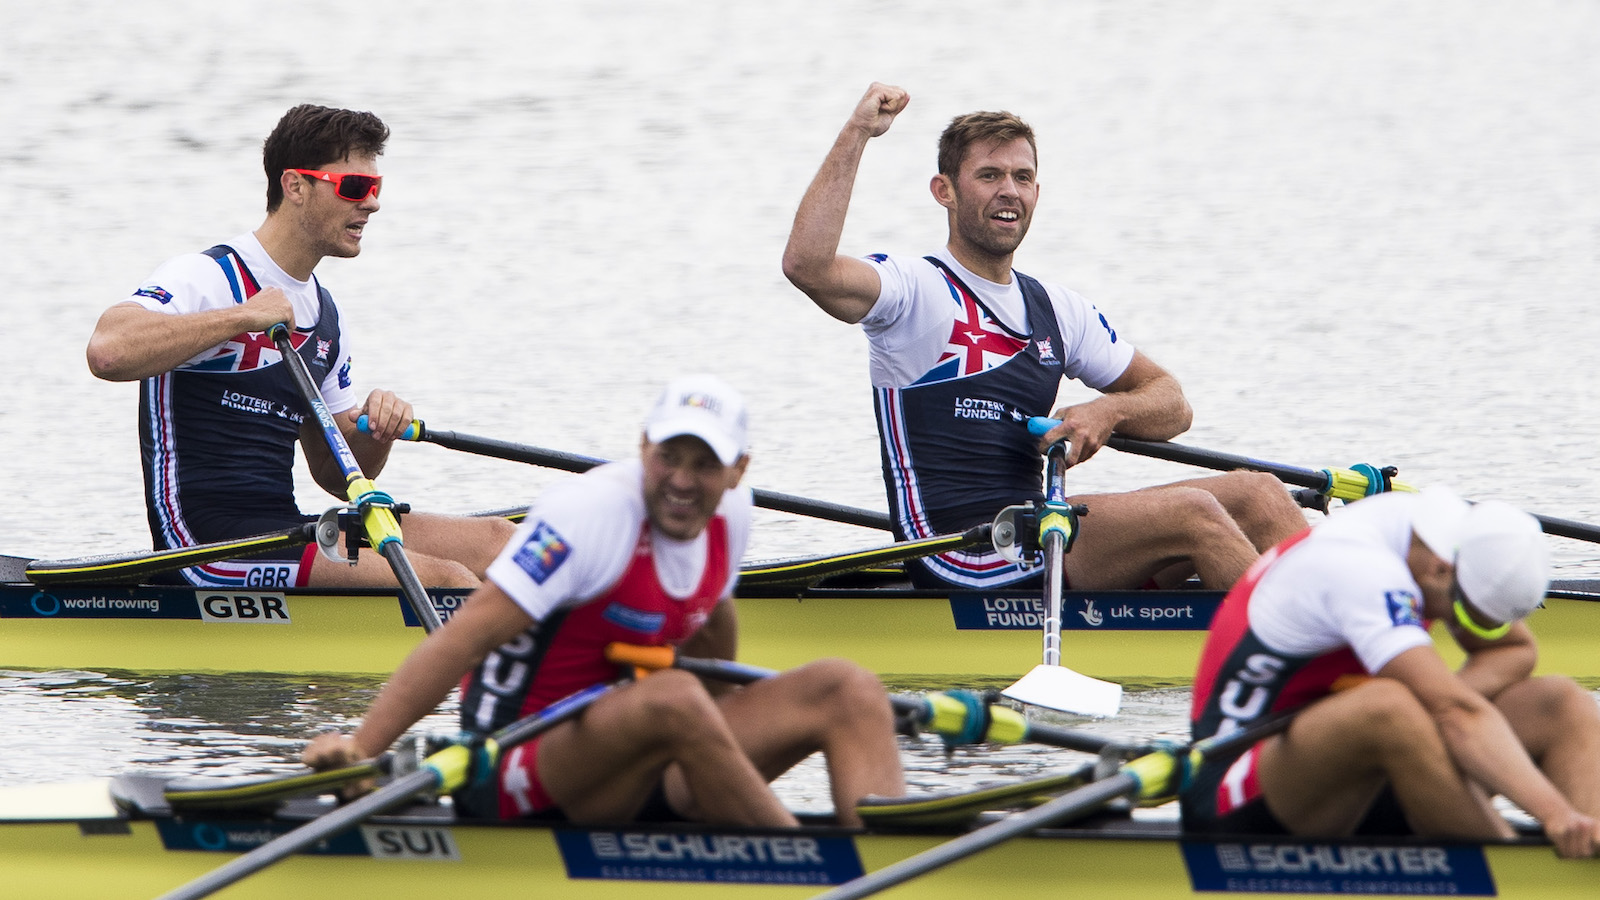 Academic rowing: types, technology, competition. Olympic champions in rowing 48